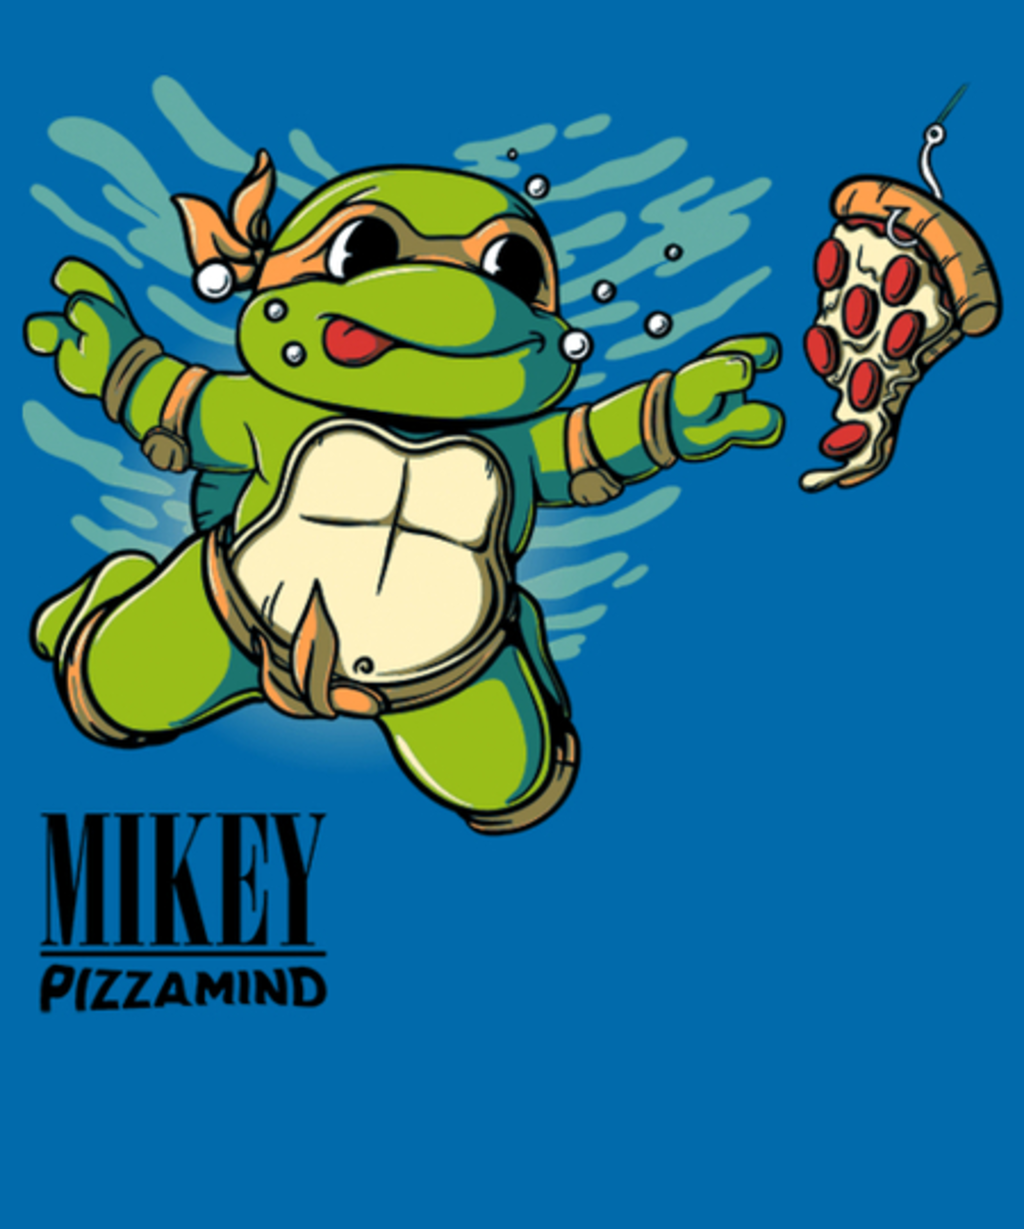 Qwertee: MIKEY - Pizzamind